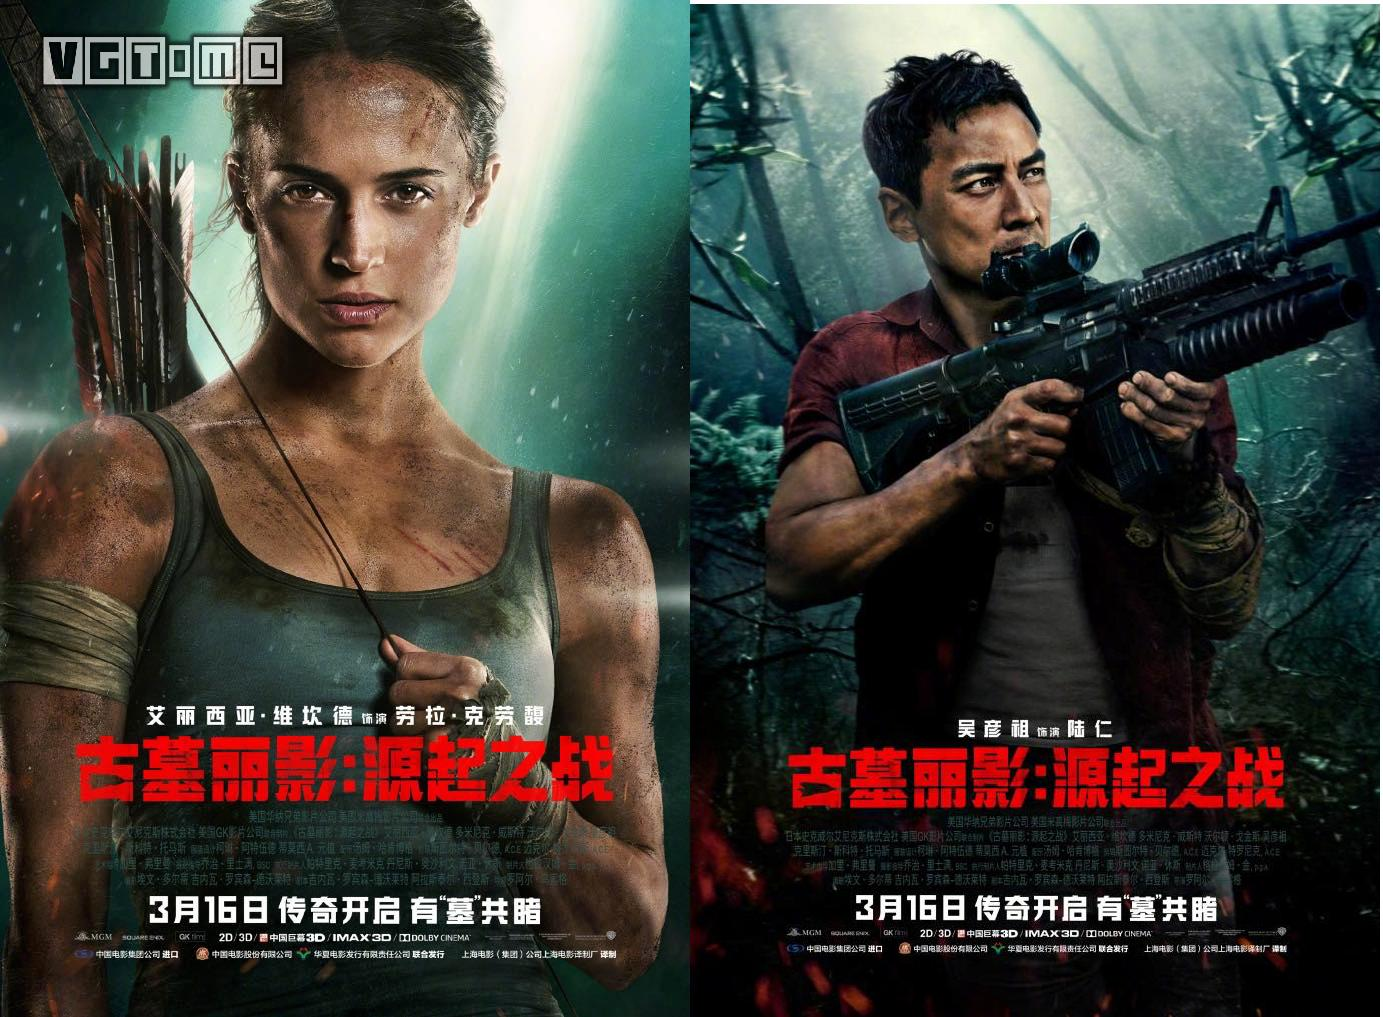 Set file on March 16th, the new tomb raider movie cinemas in China